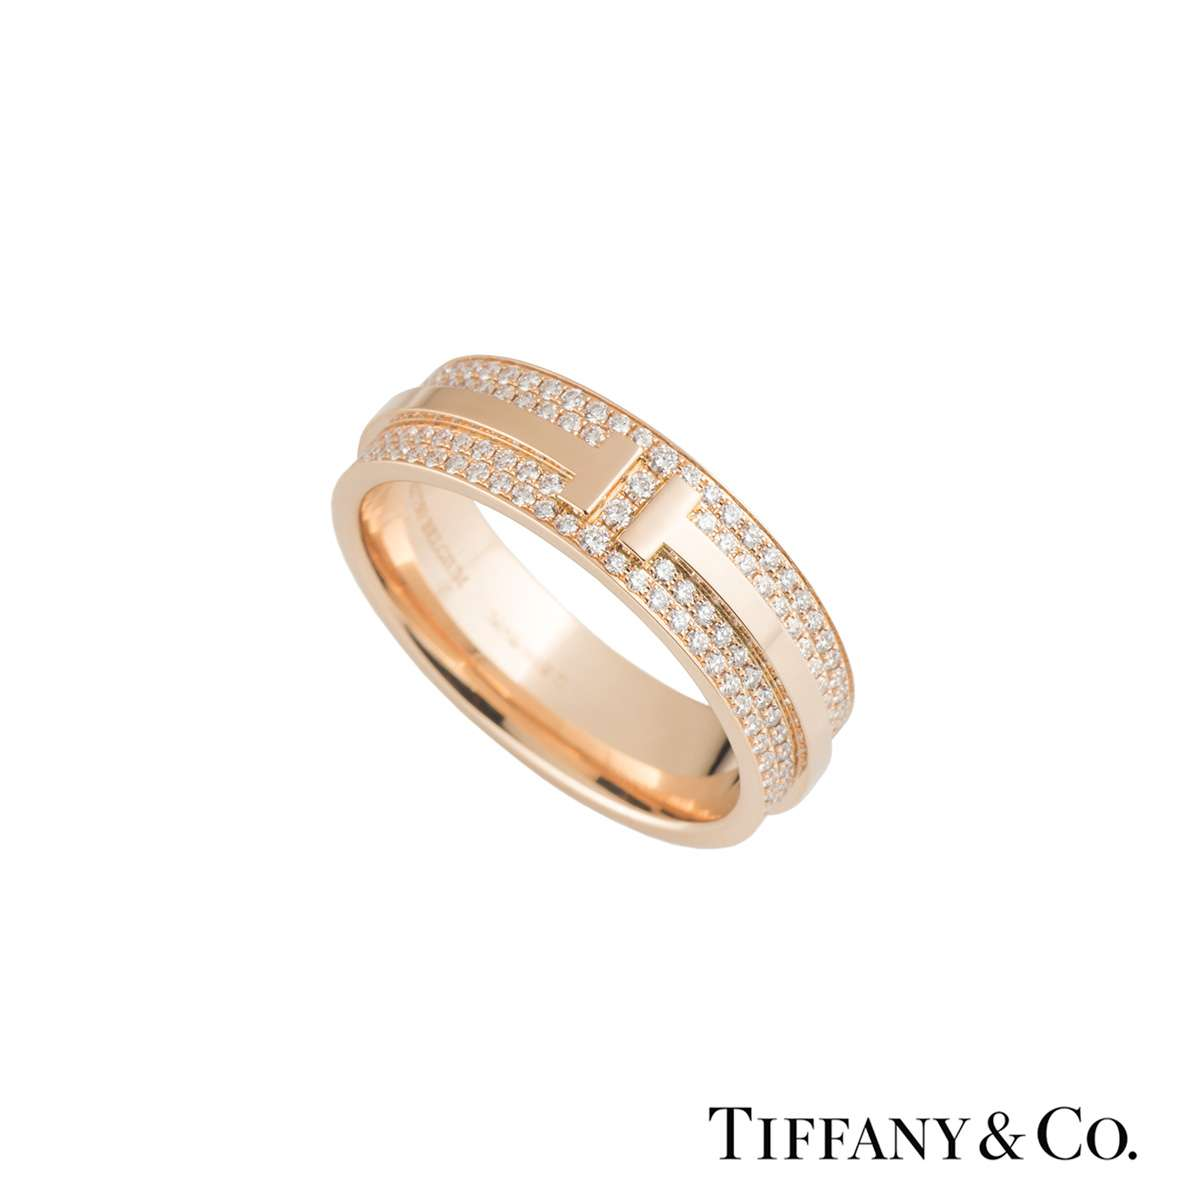 Tiffany & Co T Two Diamond Ring